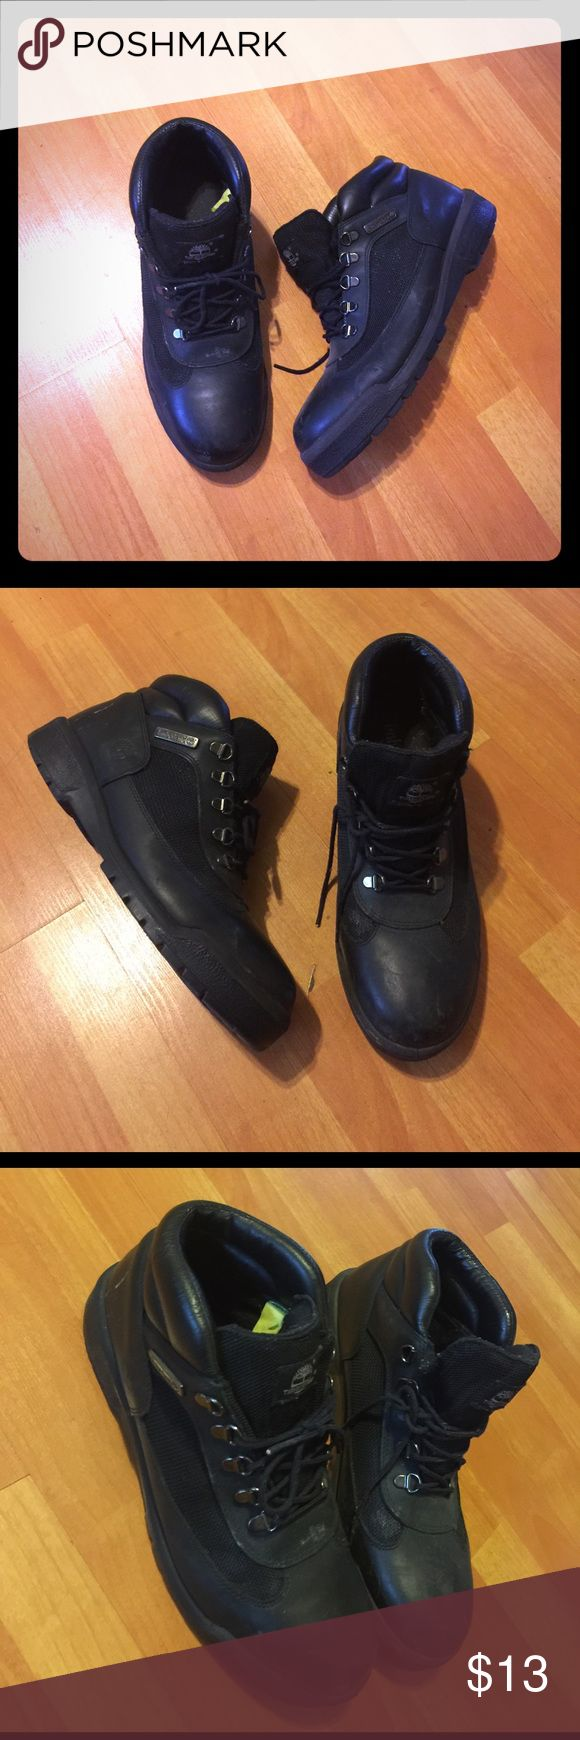 Timberland sz 12 All black timberland size 12 in men these are old. Still have a lot of life left. Don't Need them. Great for work boots. Original yellow greenish tag is still on the inside Timberland Shoes Boots